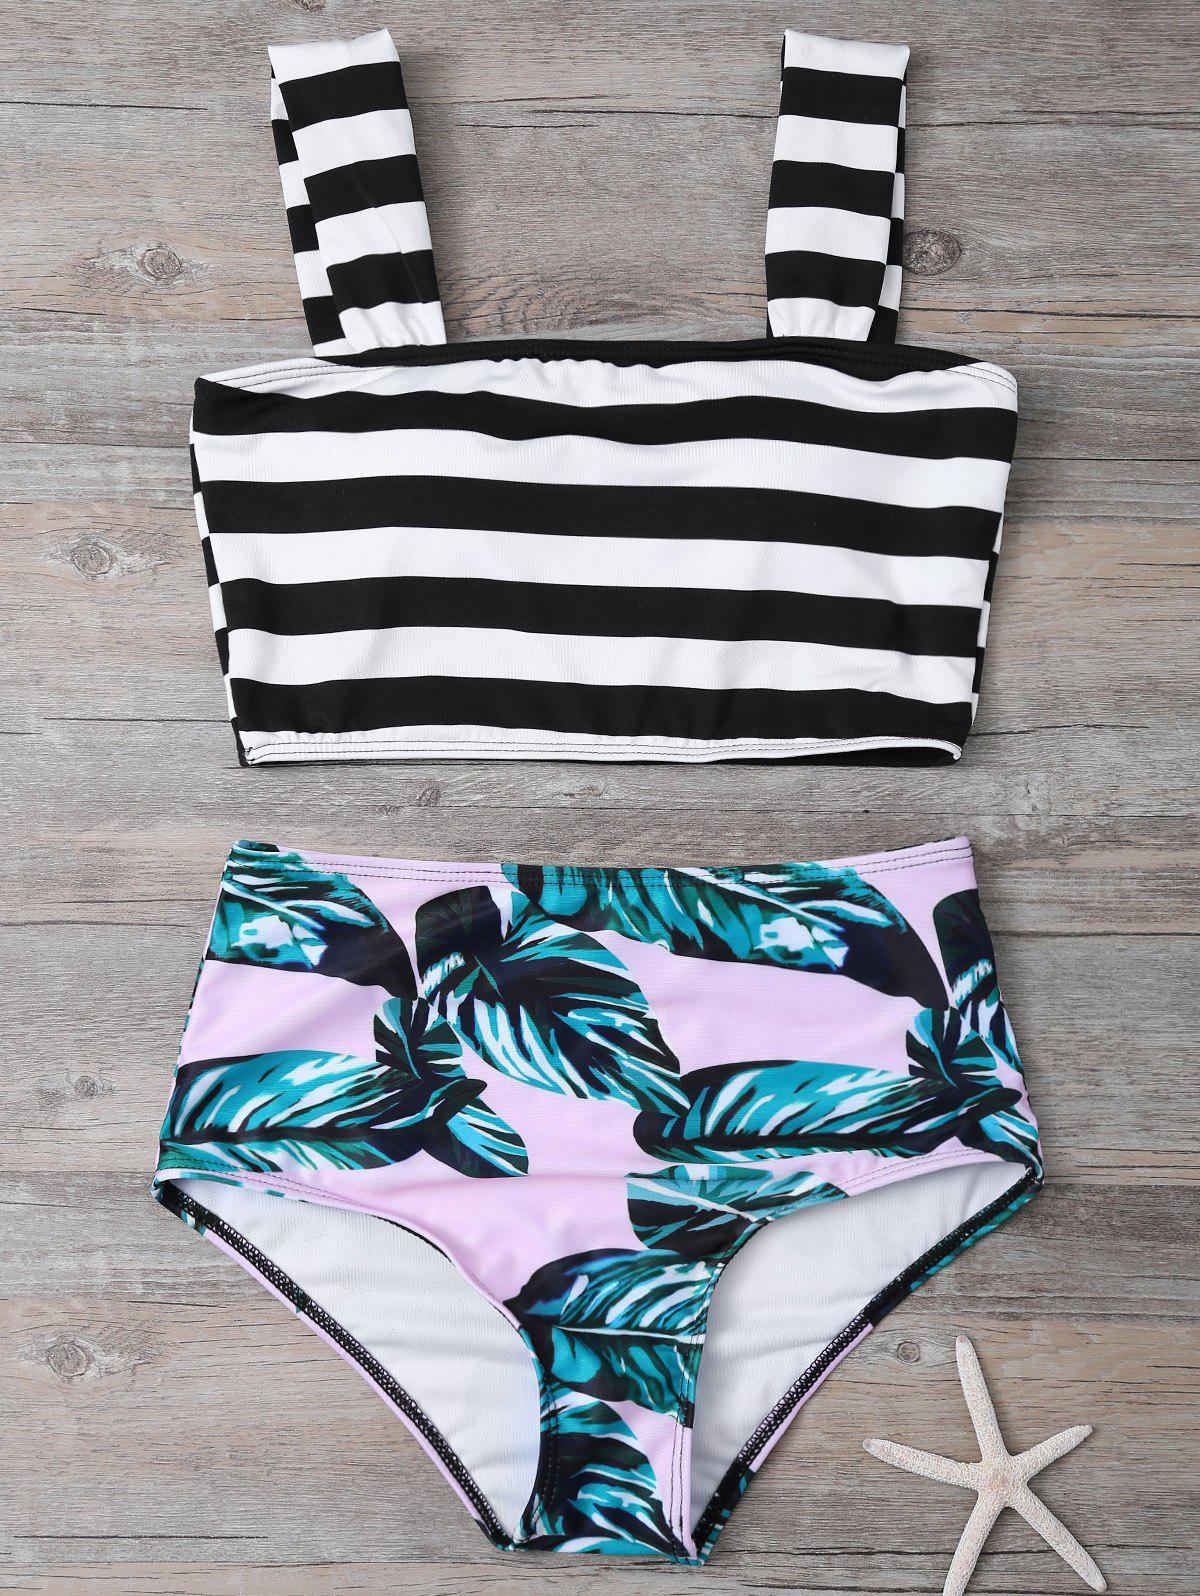 Tropical Print High Waisted Bikini with Crop TopWOMEN<br><br>Size: L; Color: COLORMIX; Swimwear Type: Bikini; Gender: For Women; Material: Polyester; Bra Style: Unlined; Support Type: Wire Free; Neckline: Square; Pattern Type: Print; Waist: Natural; Elasticity: Elastic; Weight: 0.2200kg; Package Contents: 1 x Top  1 x Briefs;